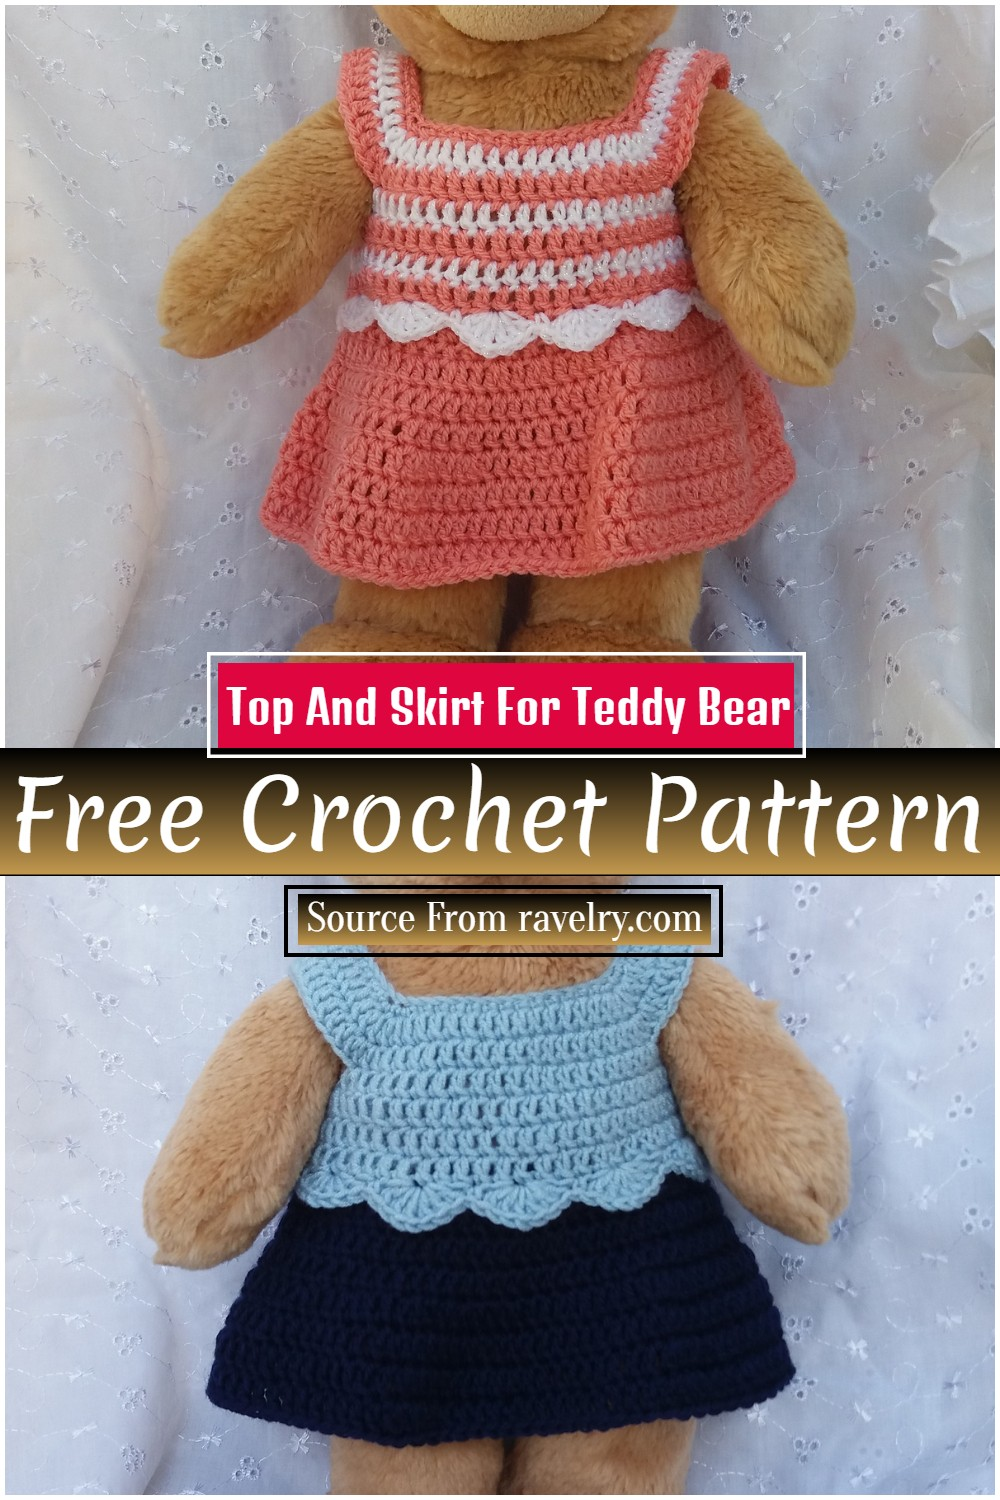 Free Crochet Top And Skirt Pattern For Teddy Bear